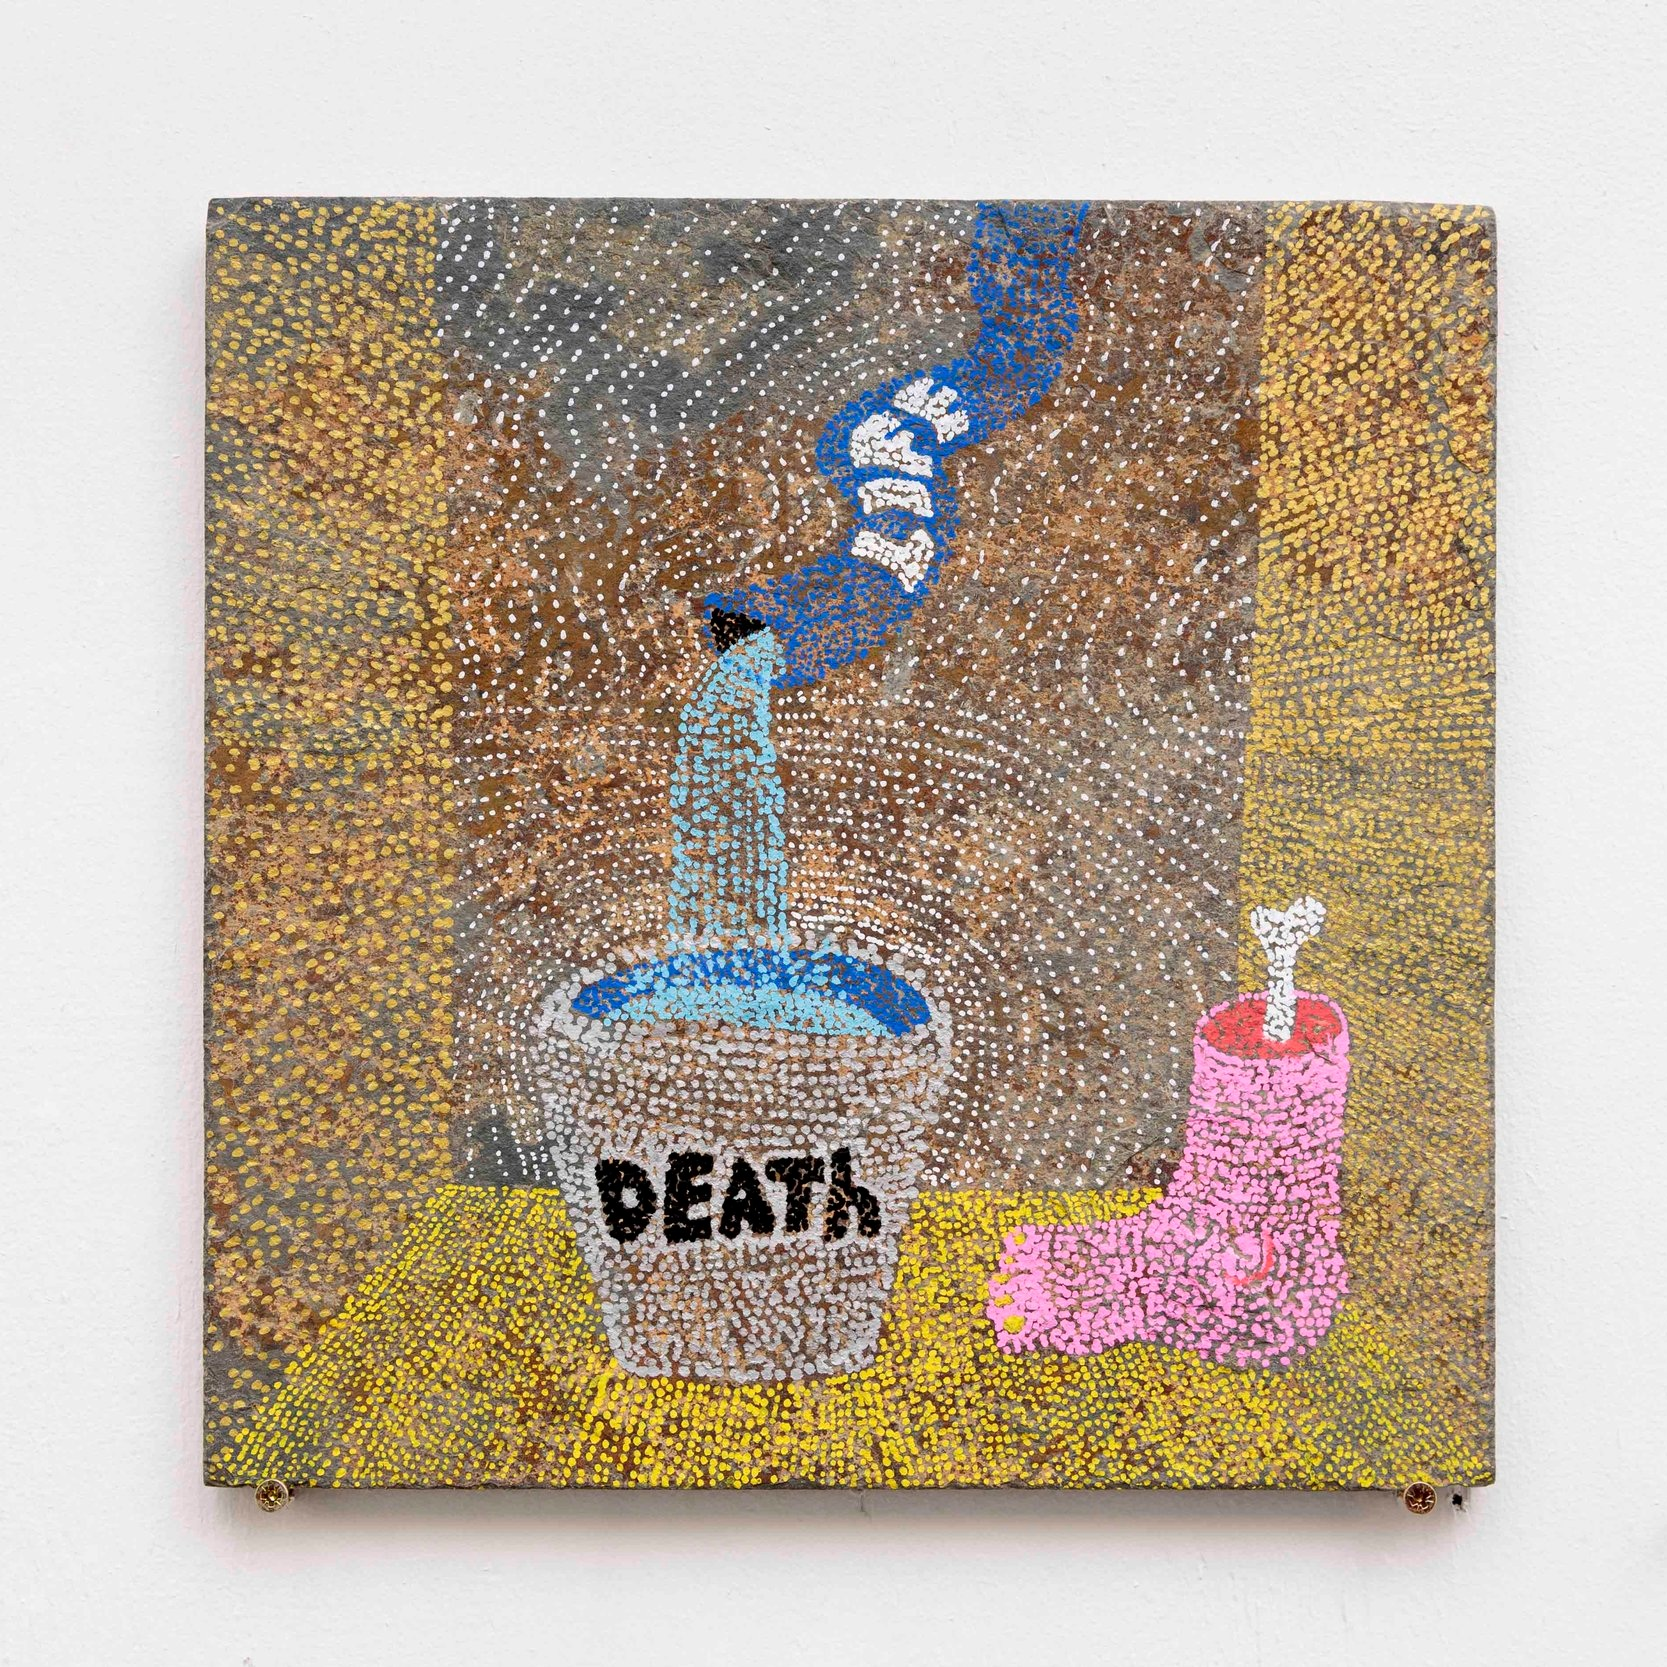 Life+and+Death%2C+paint+on+tile%2C+30+x+30cm%2C+2017.jpg